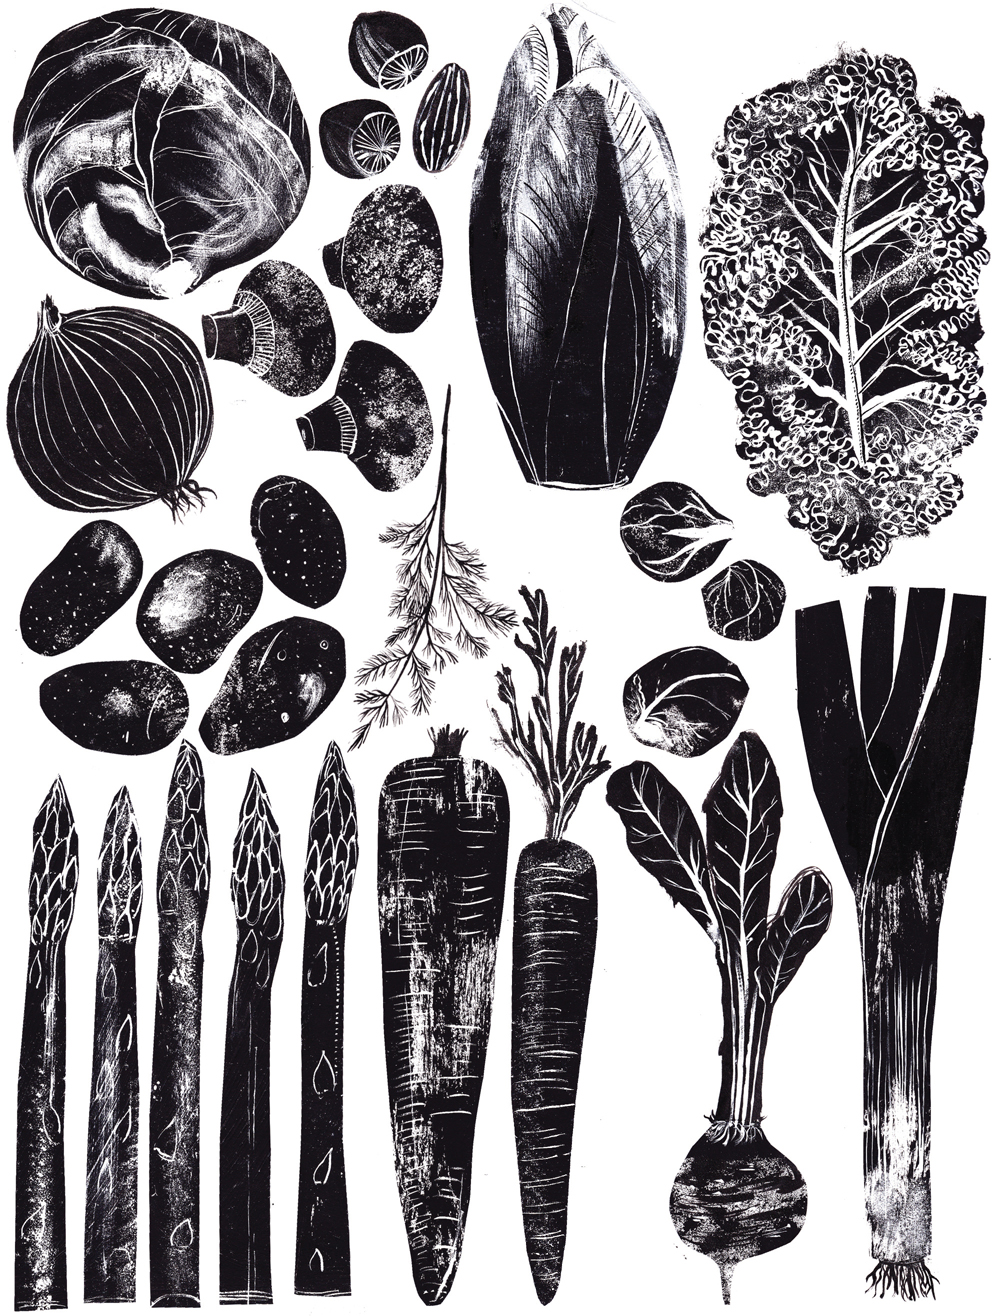 mapart.me:   Alice Pattullo - Vegetables